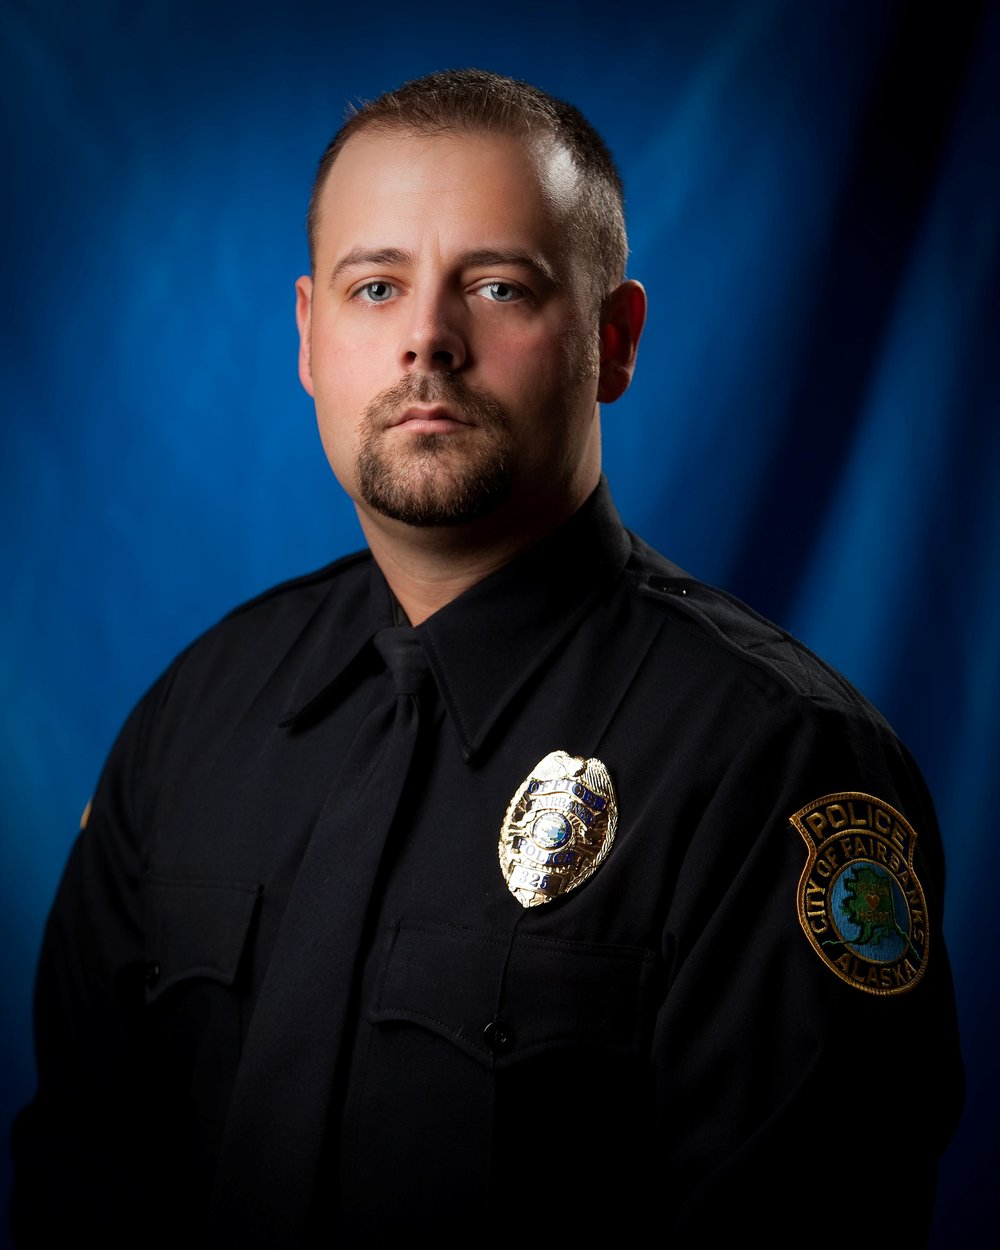 "Officer Robert Hall    City of Fairbanks Police Department    Robert Hall has been a Fairbanks Police Officer since 2009. Prior to coming to work for the City of Fairbanks, Officer Hall was a Correctional Officer from 2006-2009.  He also served our country as a Security Forces member in the Alaska Air National Guard from 2000-2012. Officer Hall is a K-9 handler and has been with his trusted partner, ""Stryker"" since 2013. Officer Hall and Stryker make a great team and consistently train in drug detection, tracking of suspects, building searches, warrant services, and public/educational demonstrations. Hall is called in his off duty time throughout the year by FPD and other surrounding law enforcement agencies to assist due to his K-9 experience.  He also makes appearances at local events throughout the year such as Mush for Kids, Youth Day, and the Midnight Sun Street Fair. Since 2010, he has acted as the Interior point of contact for the Special Olympics Law Enforcement Torch Run. This has entailed working with the State of Alaska Special Olympics on coordinating the run and law enforcement volunteers, which has raised an average of $8,000 a year.  Robert spent 2014 as the assistant coach for Special Olympics track and was the head coach in 2015 before passing the torch. He has also helped put on the Law Enforcement Torch Run ""Tip a Cop"" dinner."